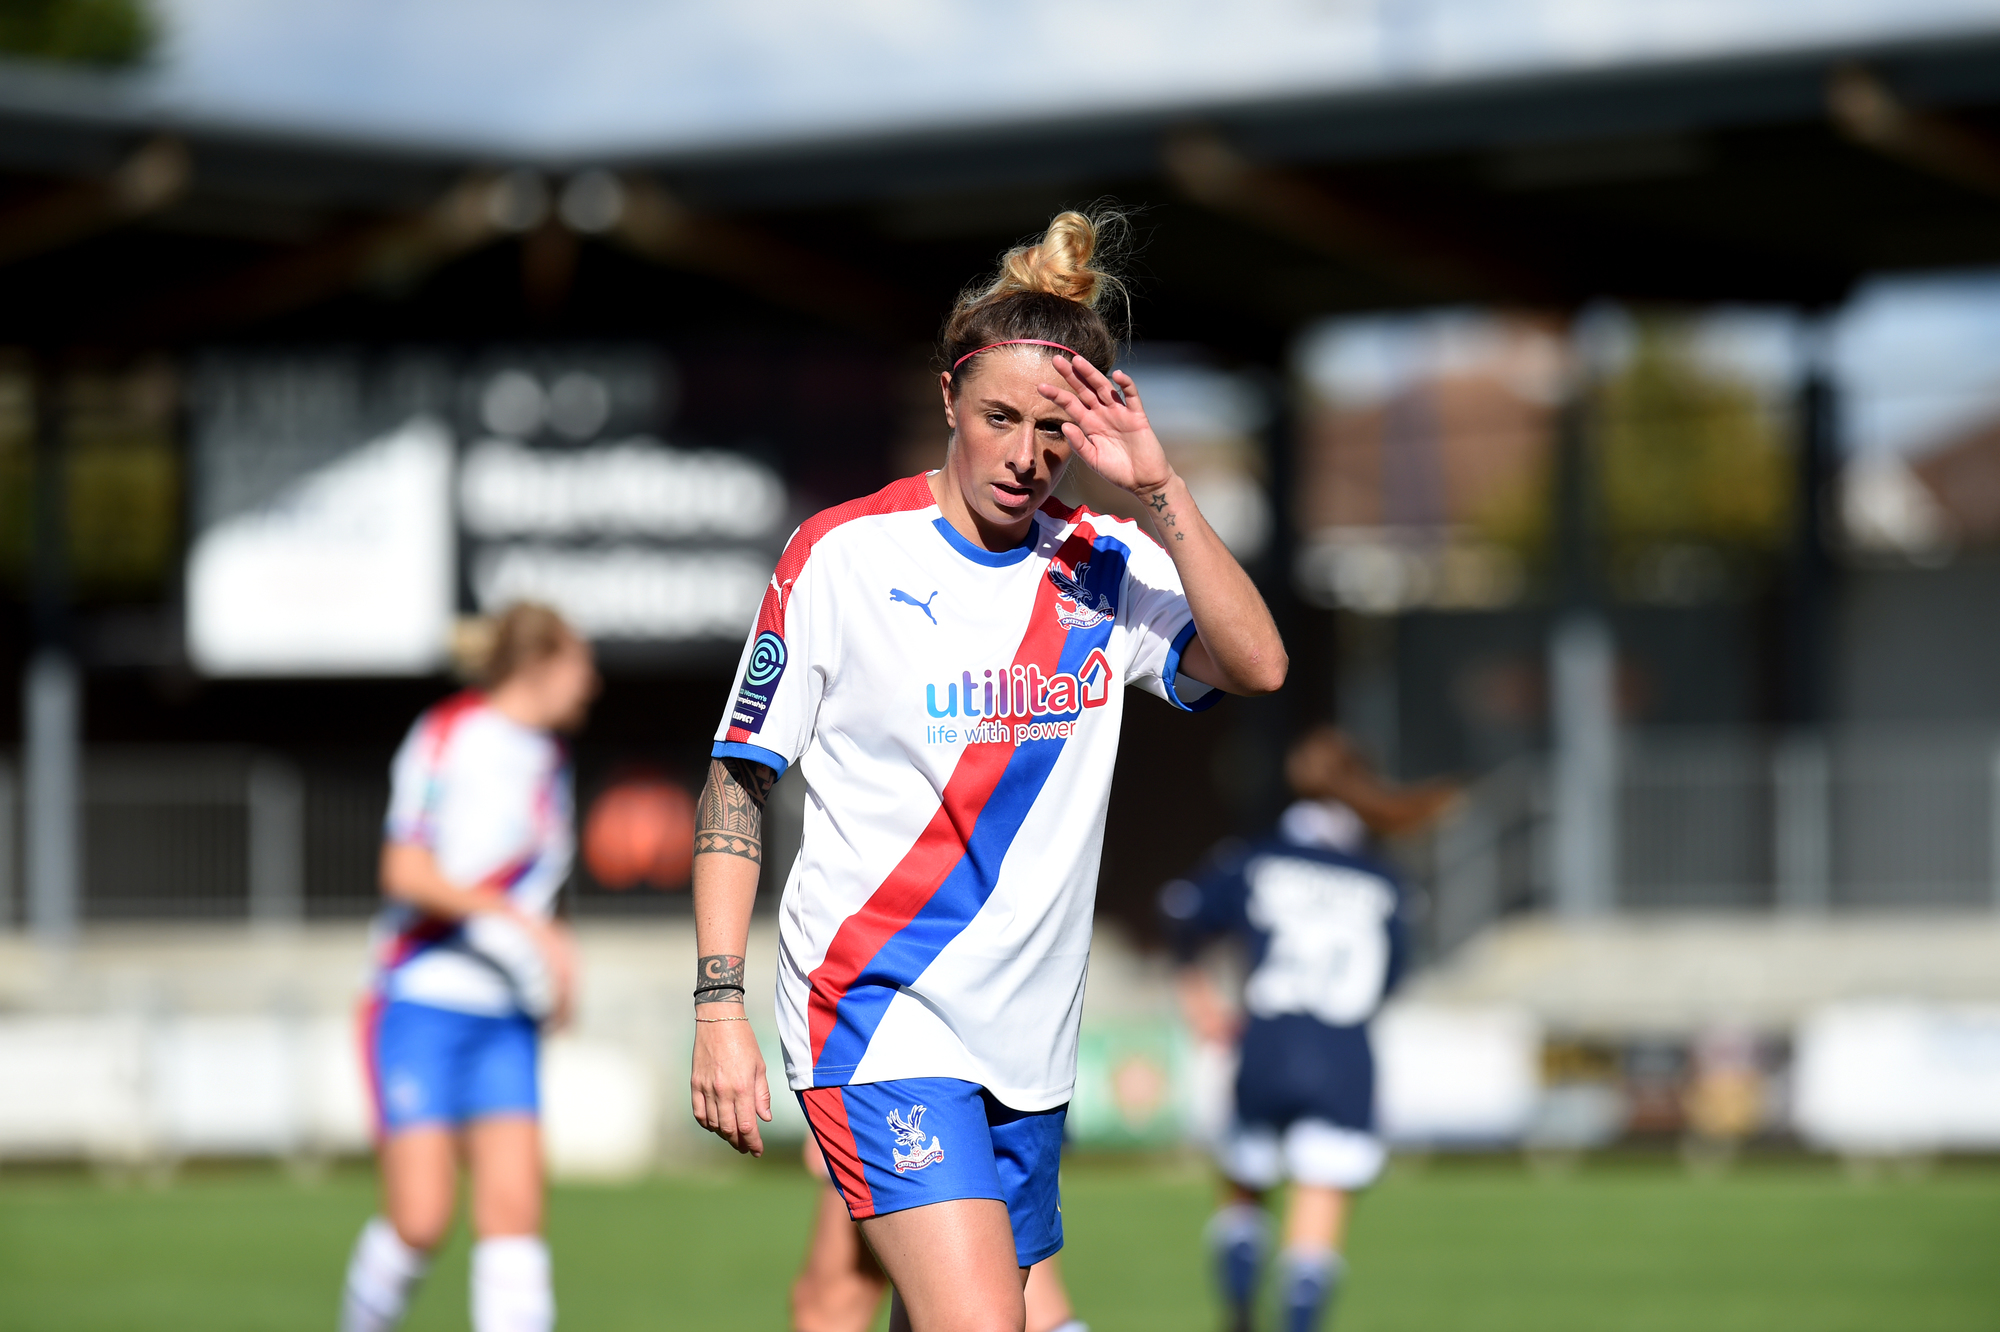 Crystal Palace's Ashlee Kincks has suffered an ACL injury